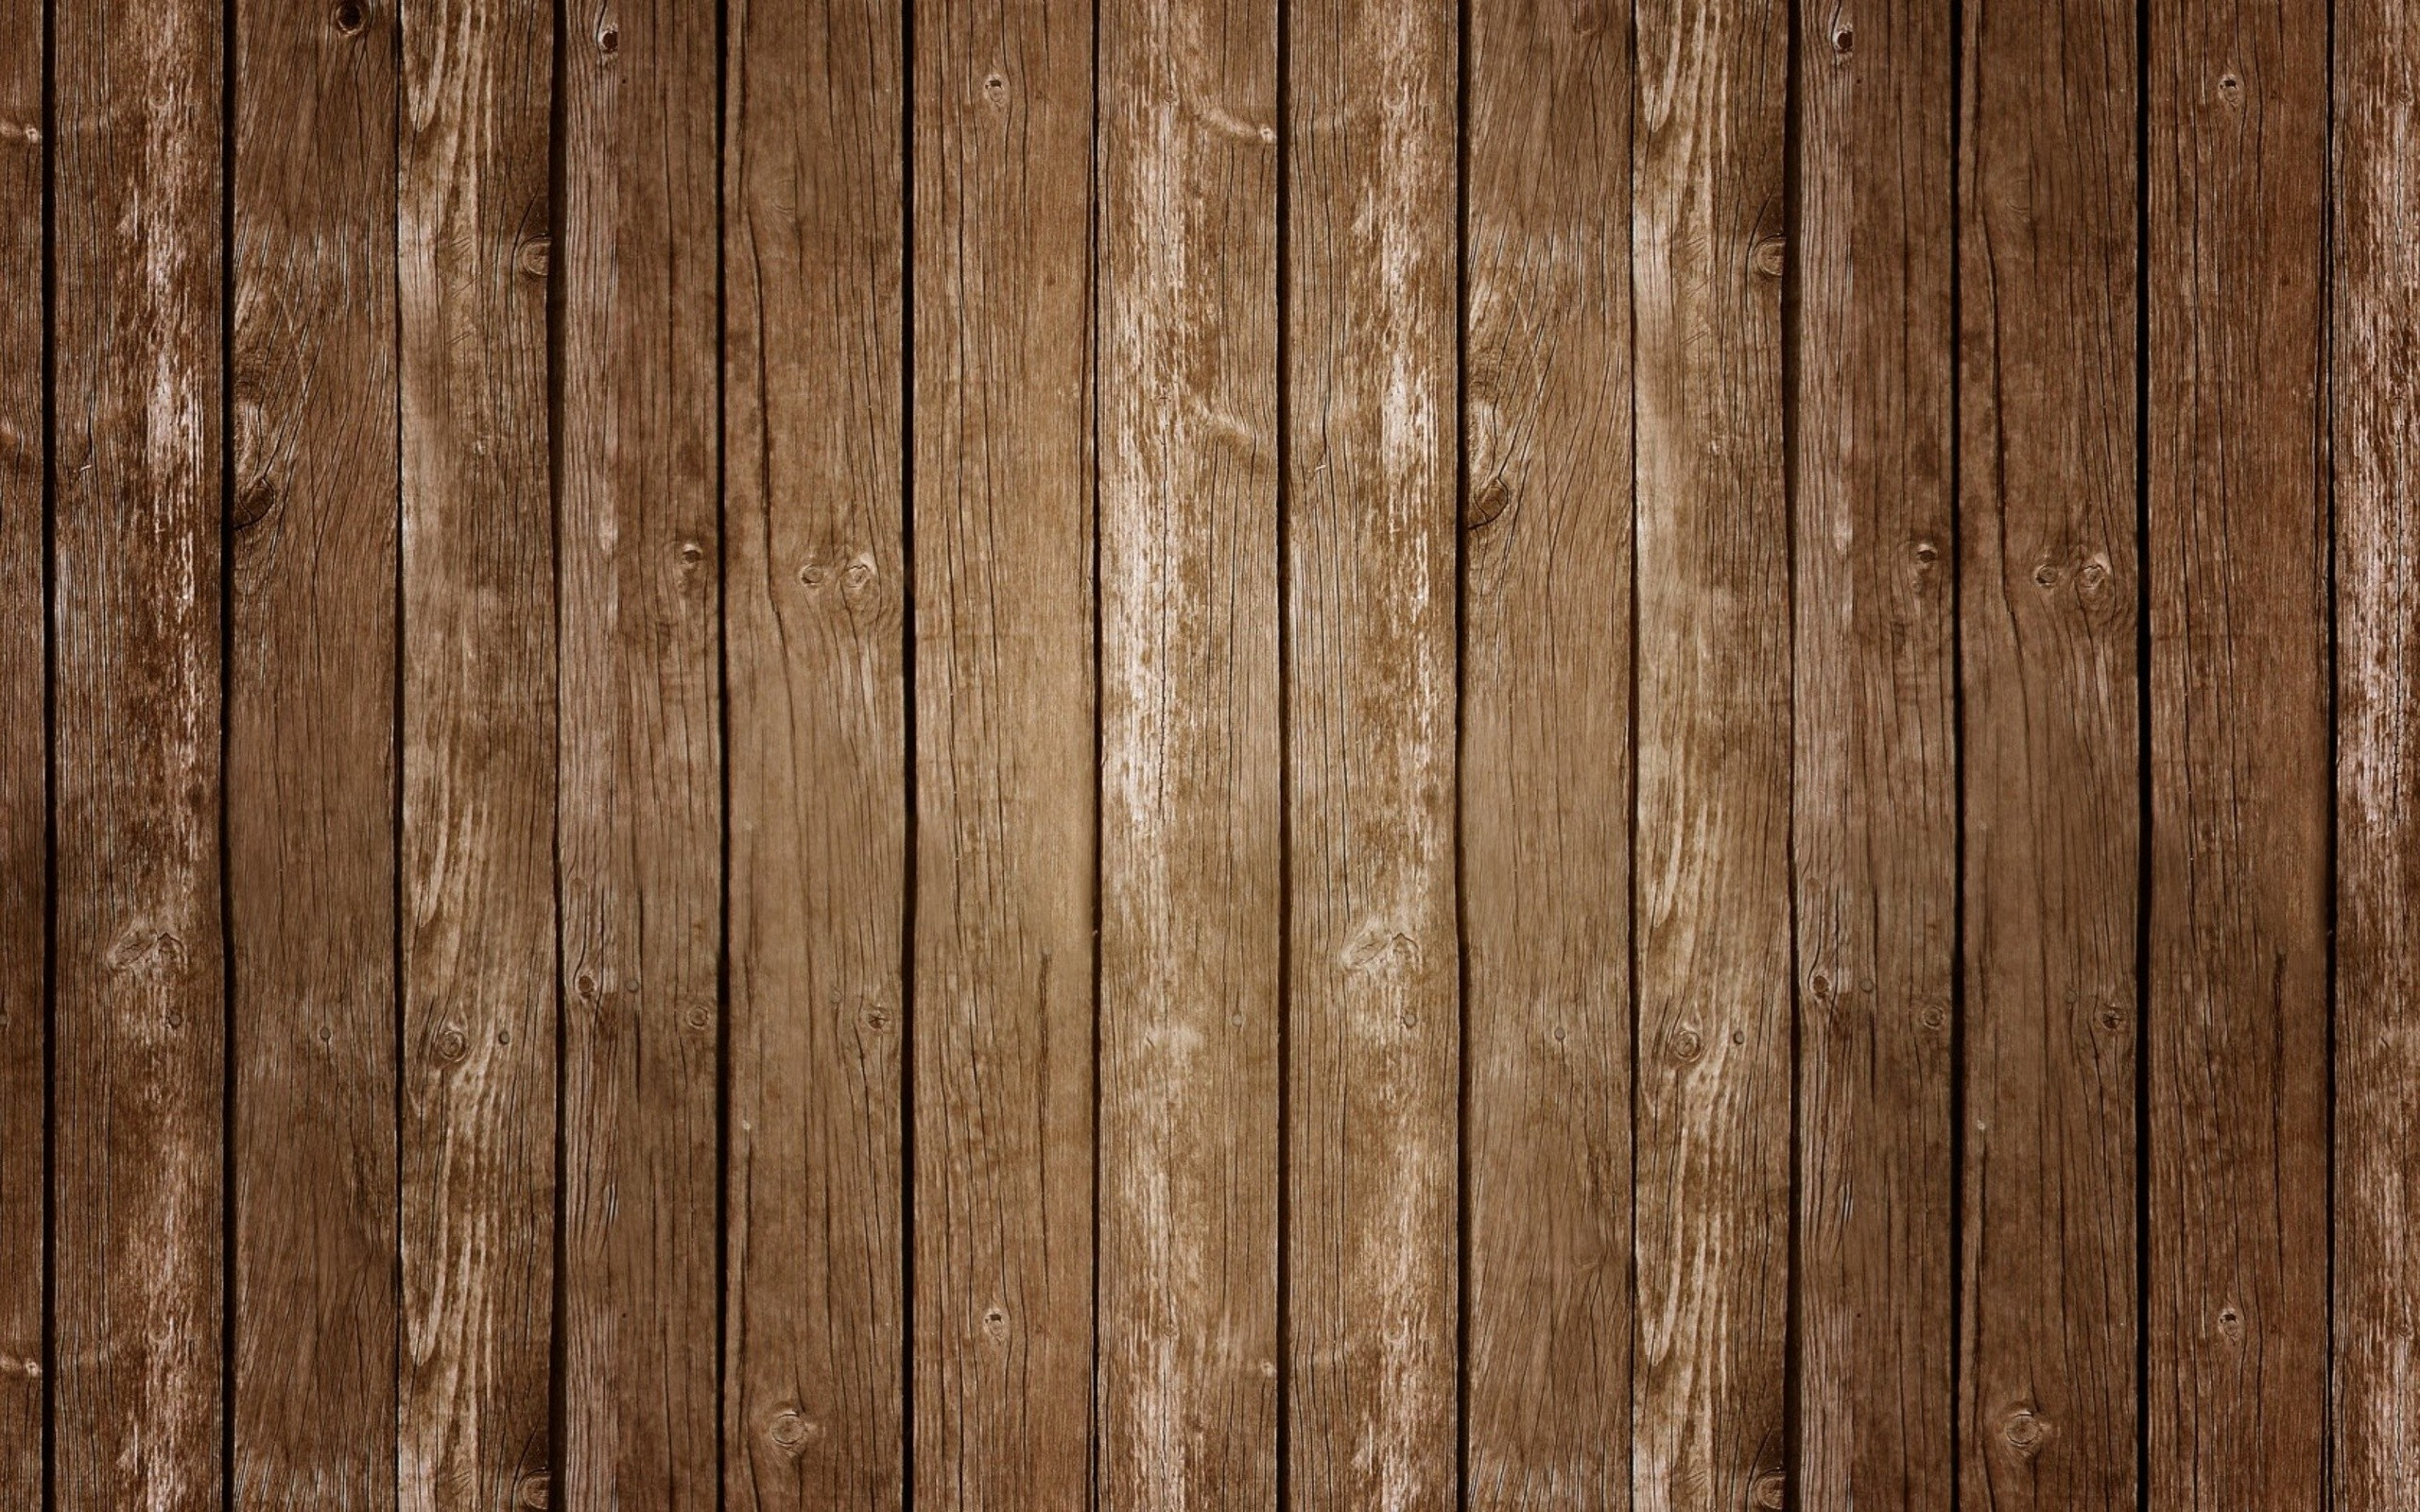 … Old Weathered Rustic Rustic Barn Wood Background And Wood Computer  Wallpapers Desktop Backgrounds …